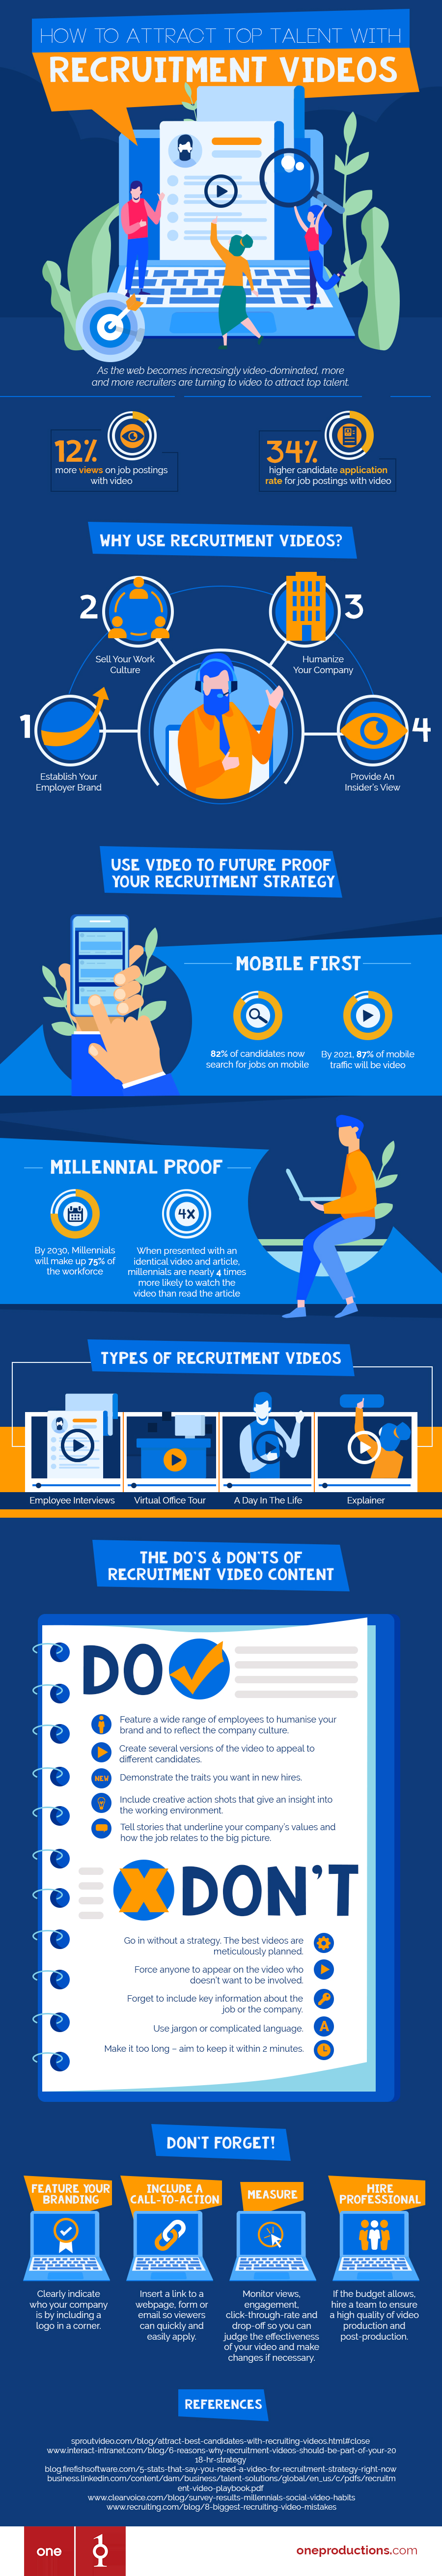 how_to_attract_top_talent_with_recruitment_videos-_infographic